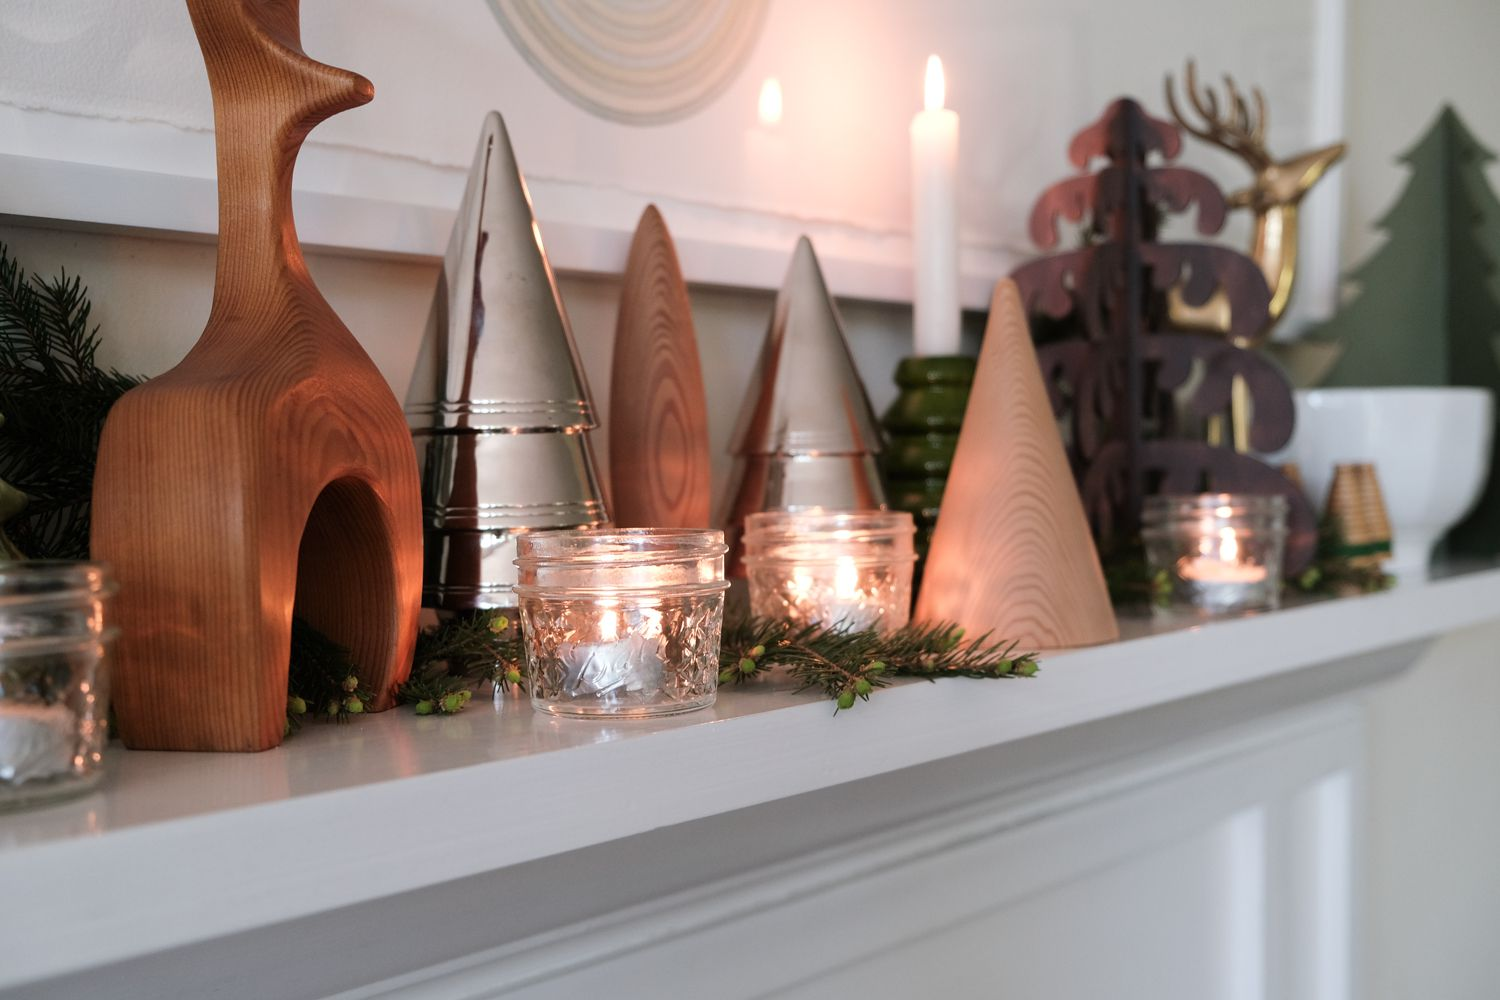 canning jars reused as tea light holders for festive holiday decor around mantle